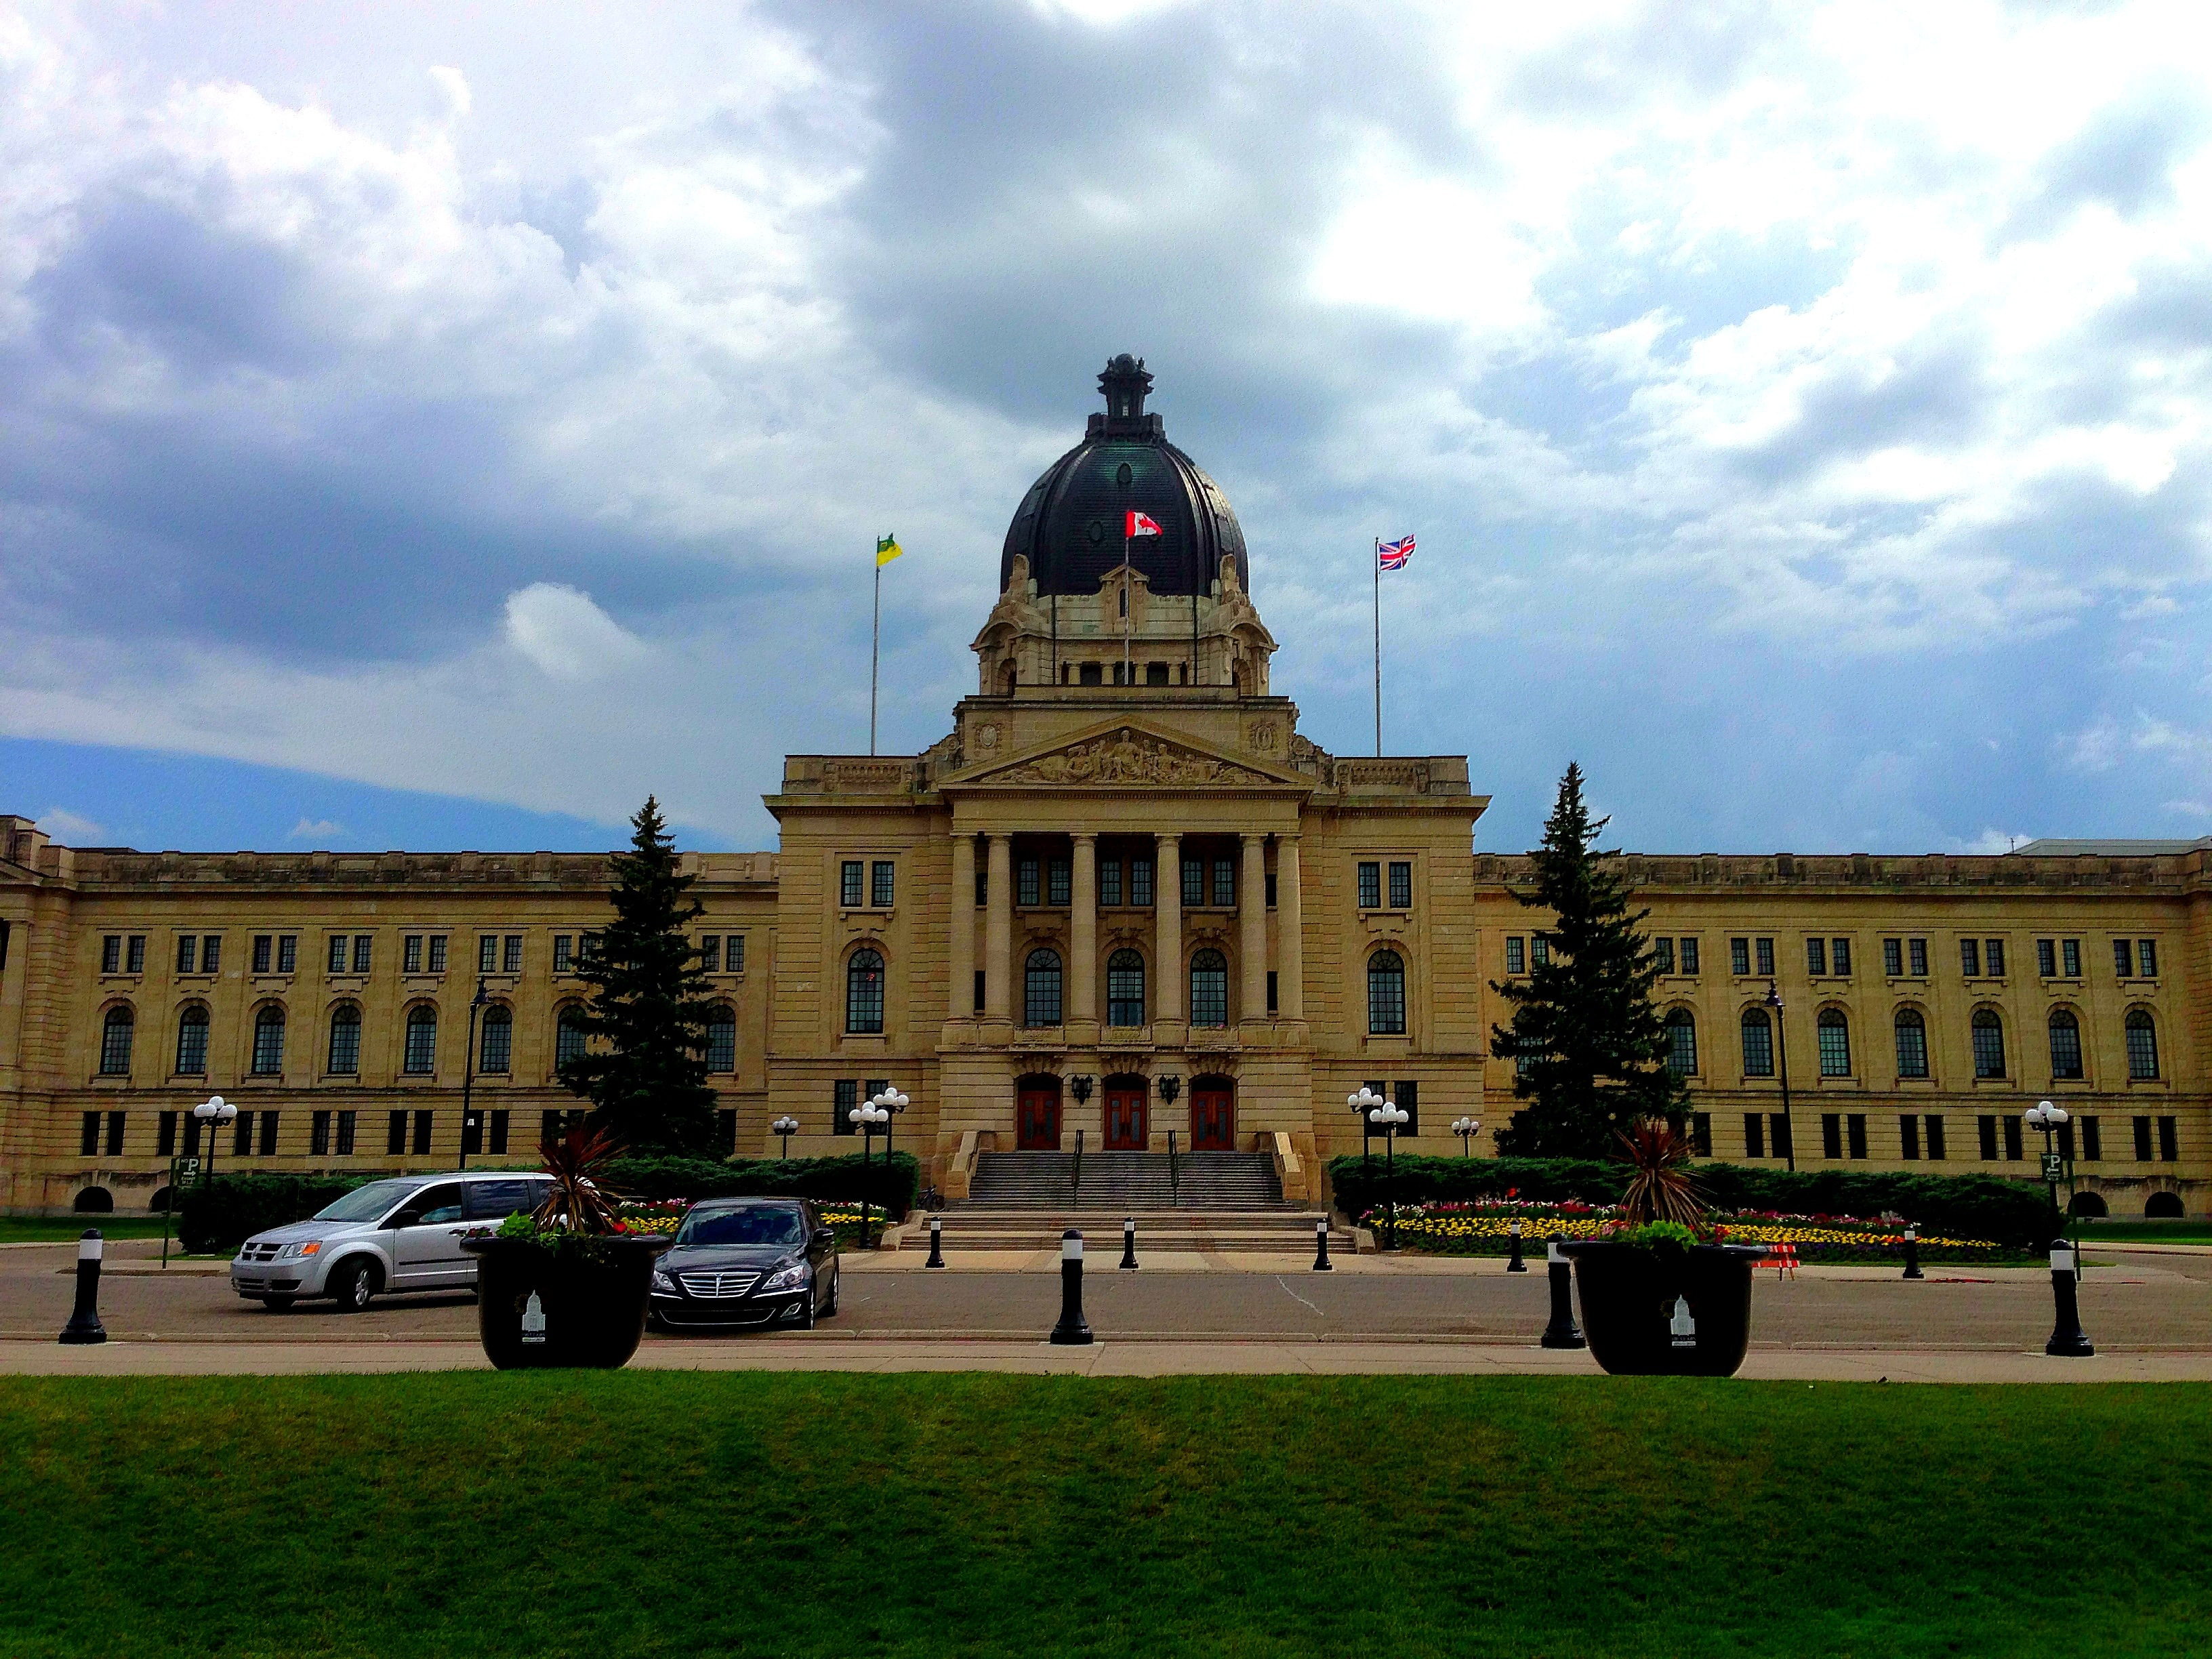 Regina: The City That Rhymes With Fun